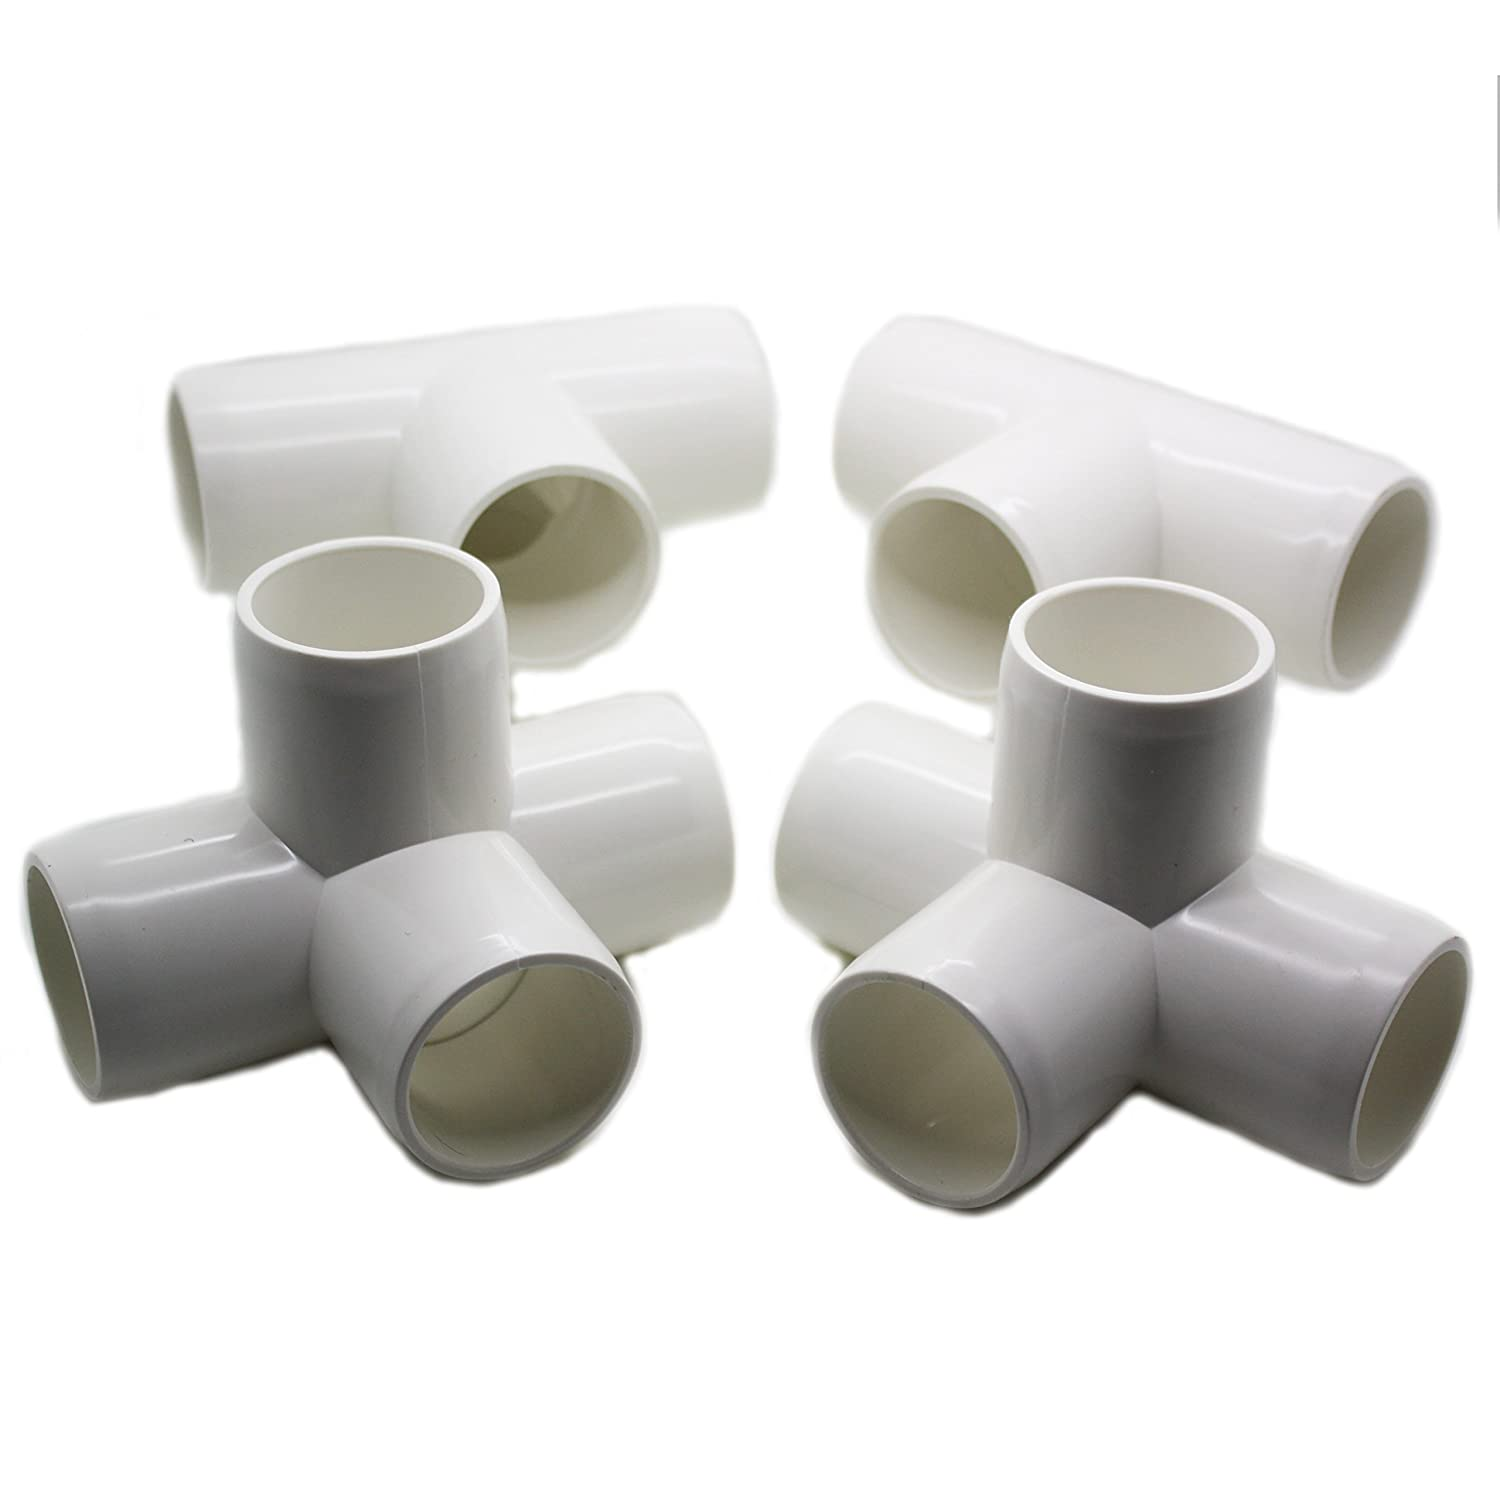 Pvc Furniture Pvc Furniture Fittings Formufit F001ect Wh 10 Pvc Table 4 Furniture